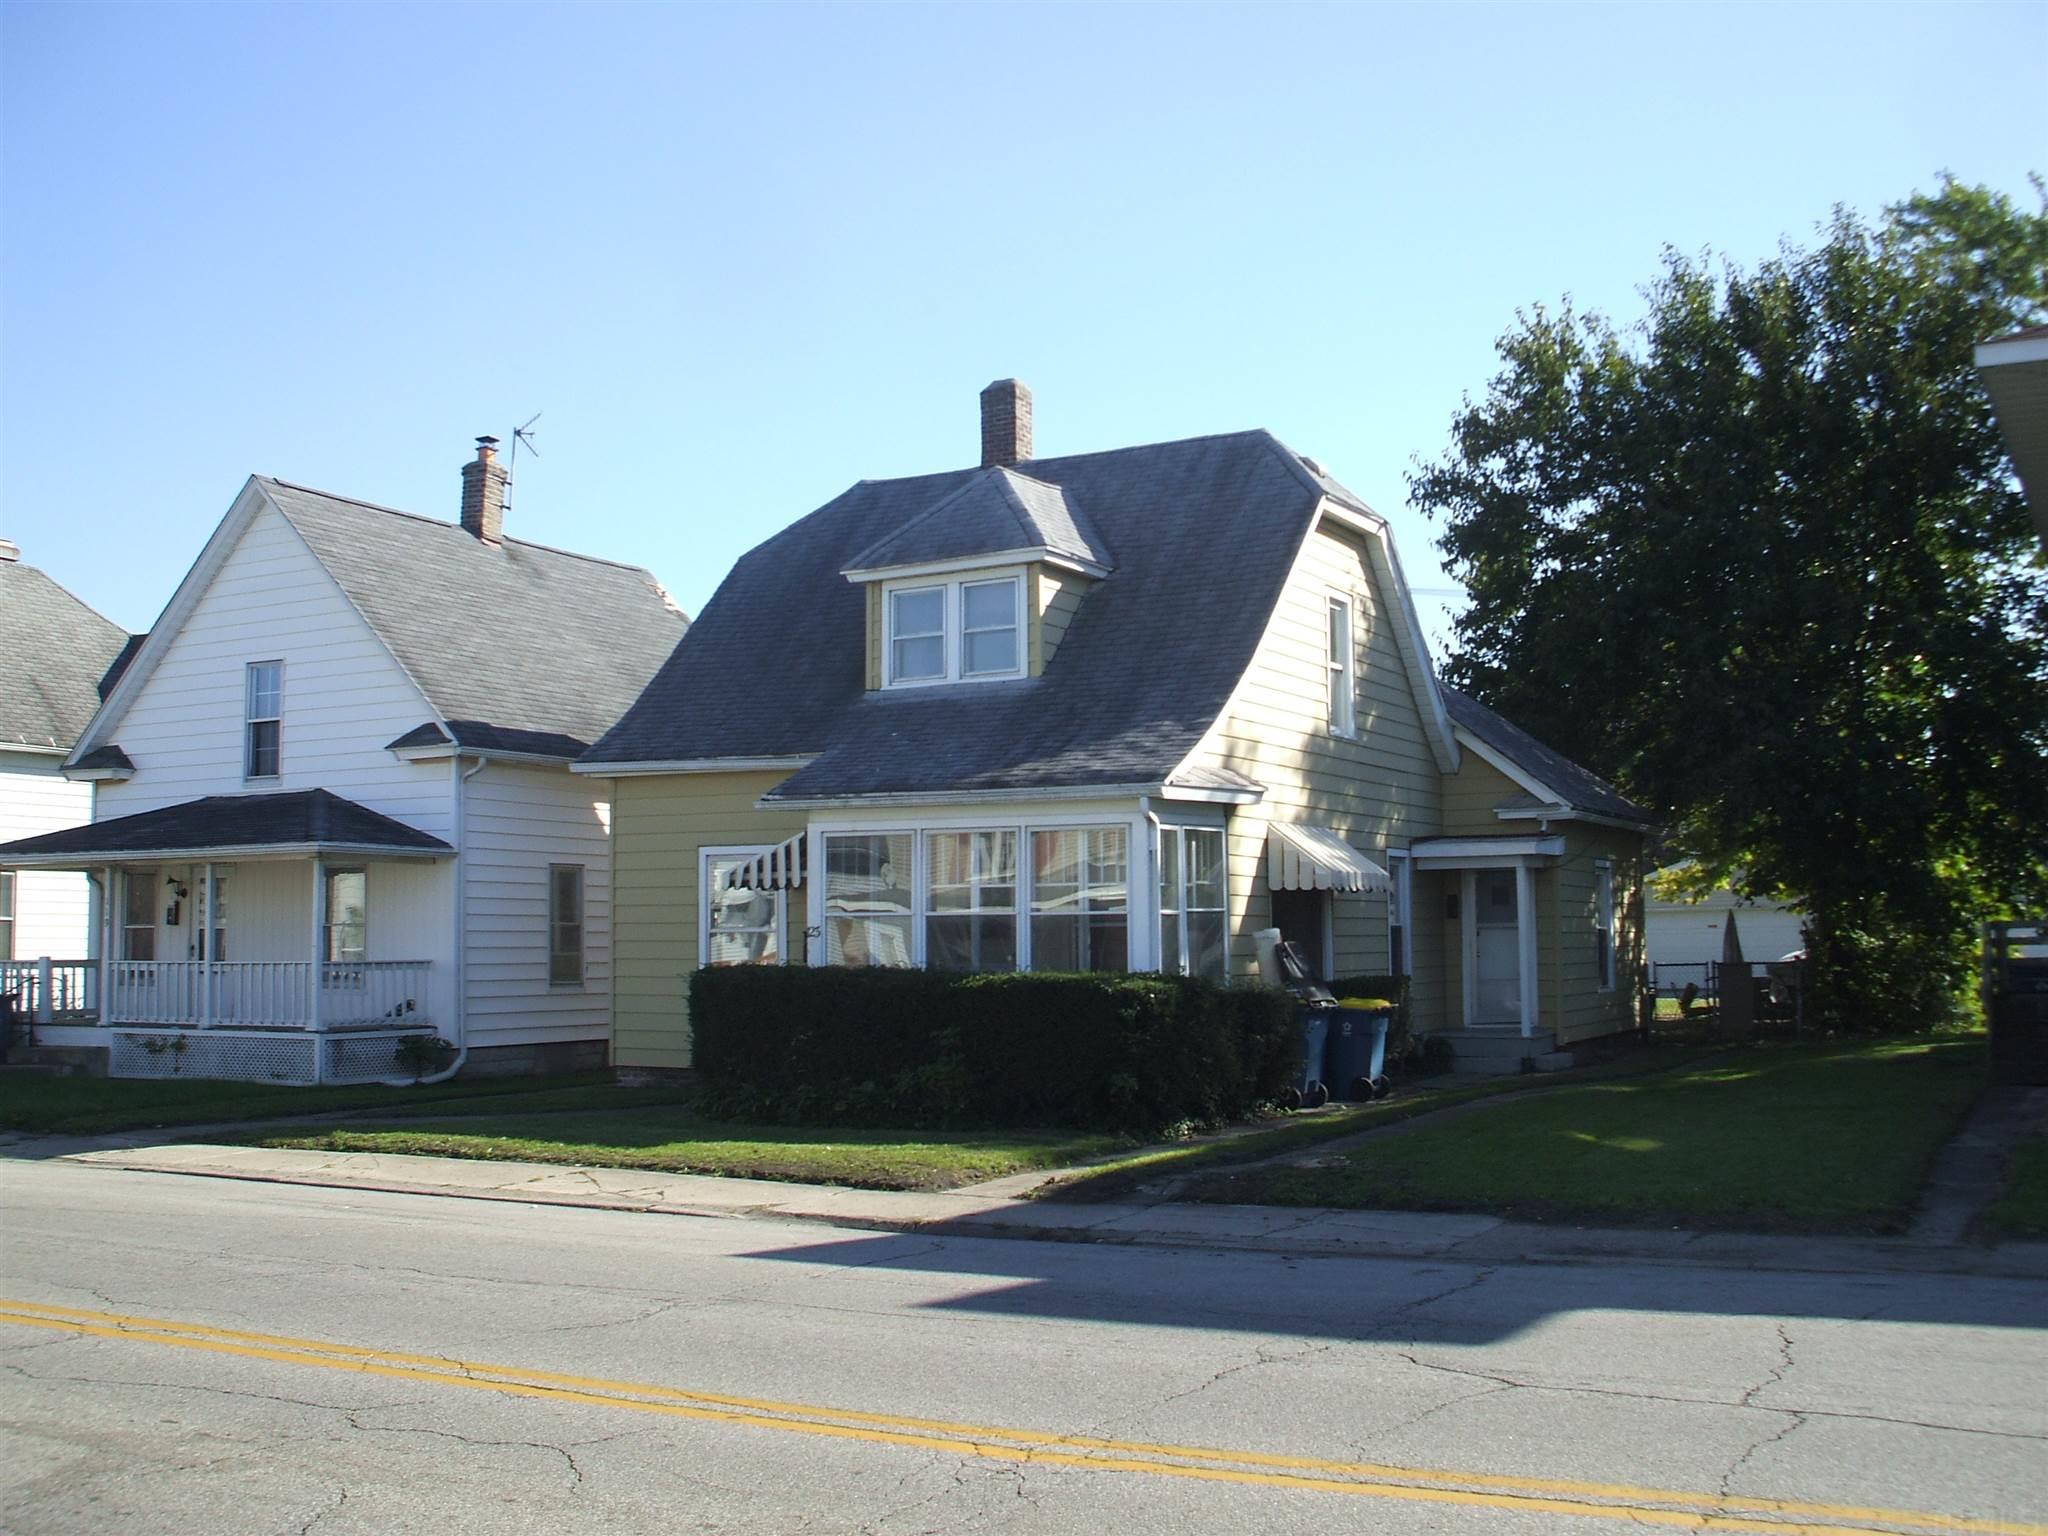 123 W 8th Mishawaka, IN 46544